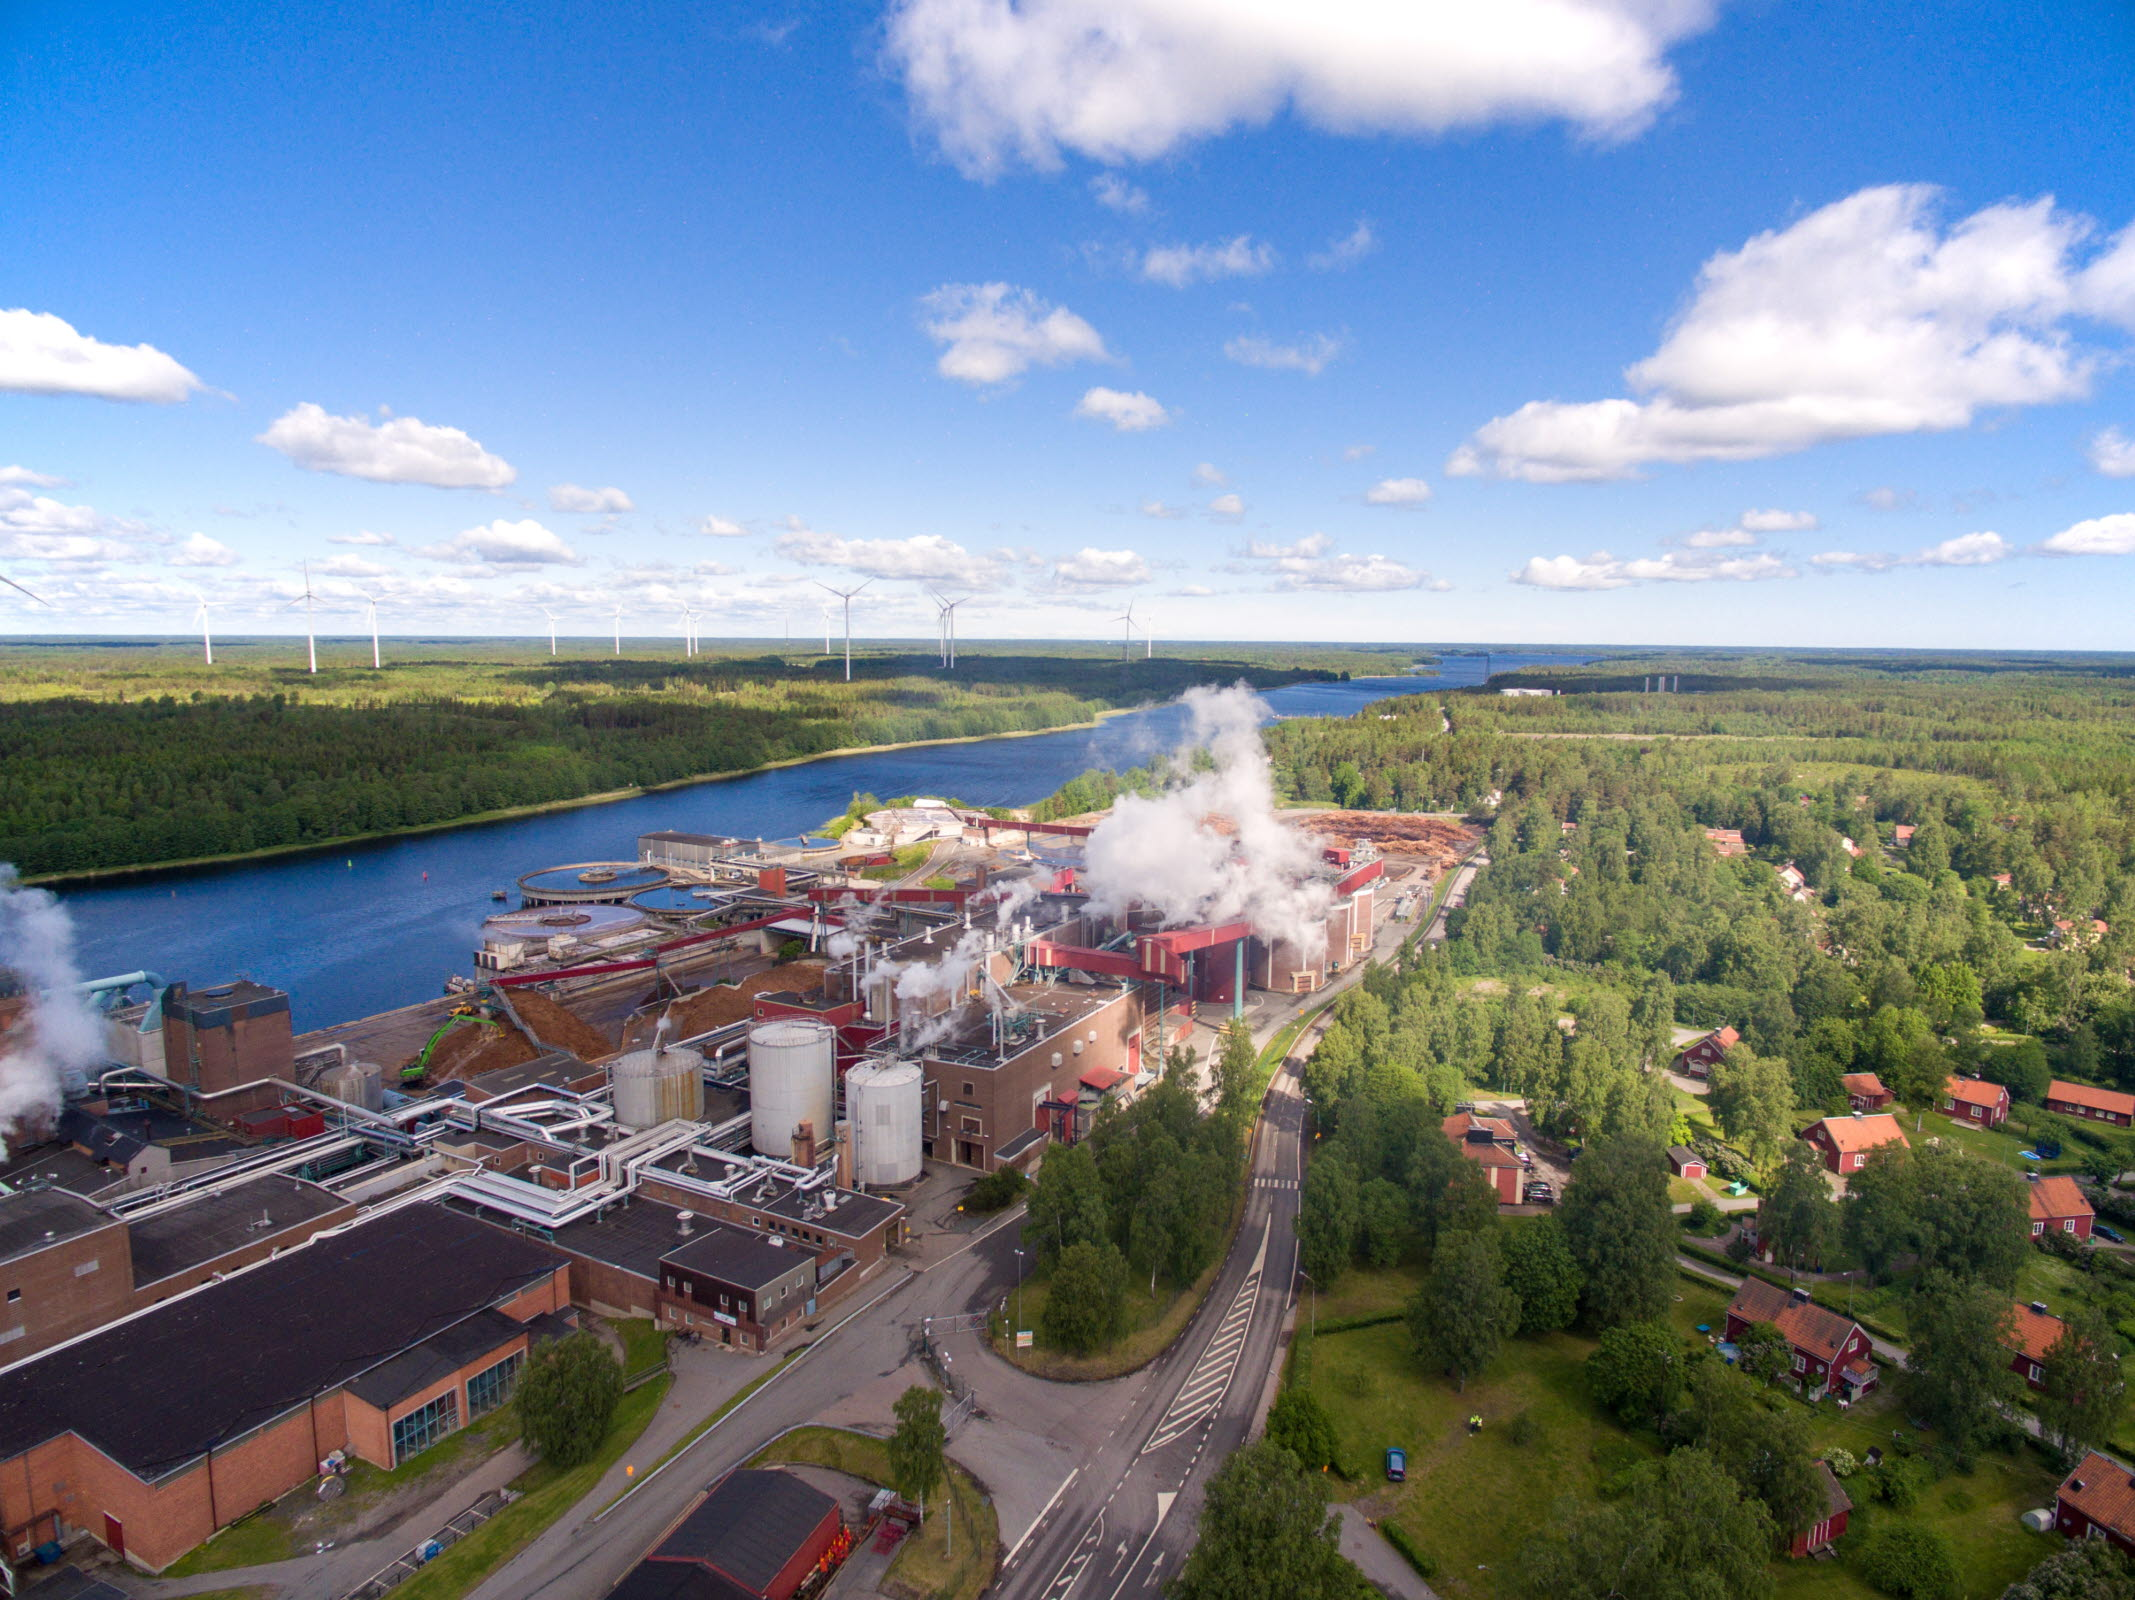 Aerial photo of Hallsta paper mill on a sunny summer day